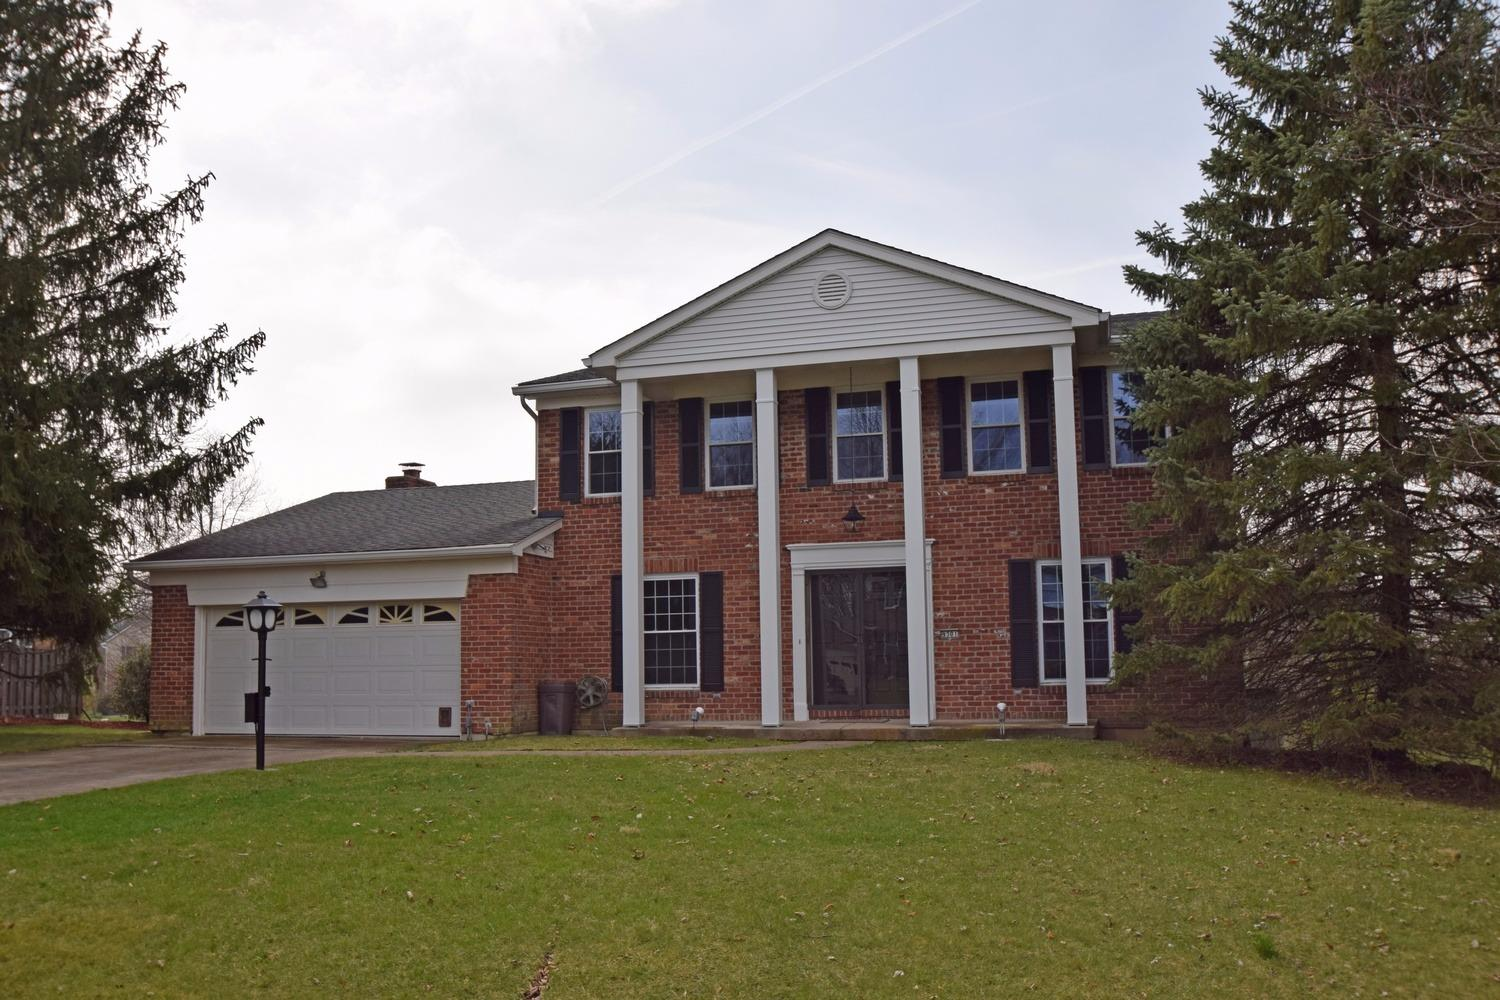 9301 Sunderland Way, West Chester, OH 45069